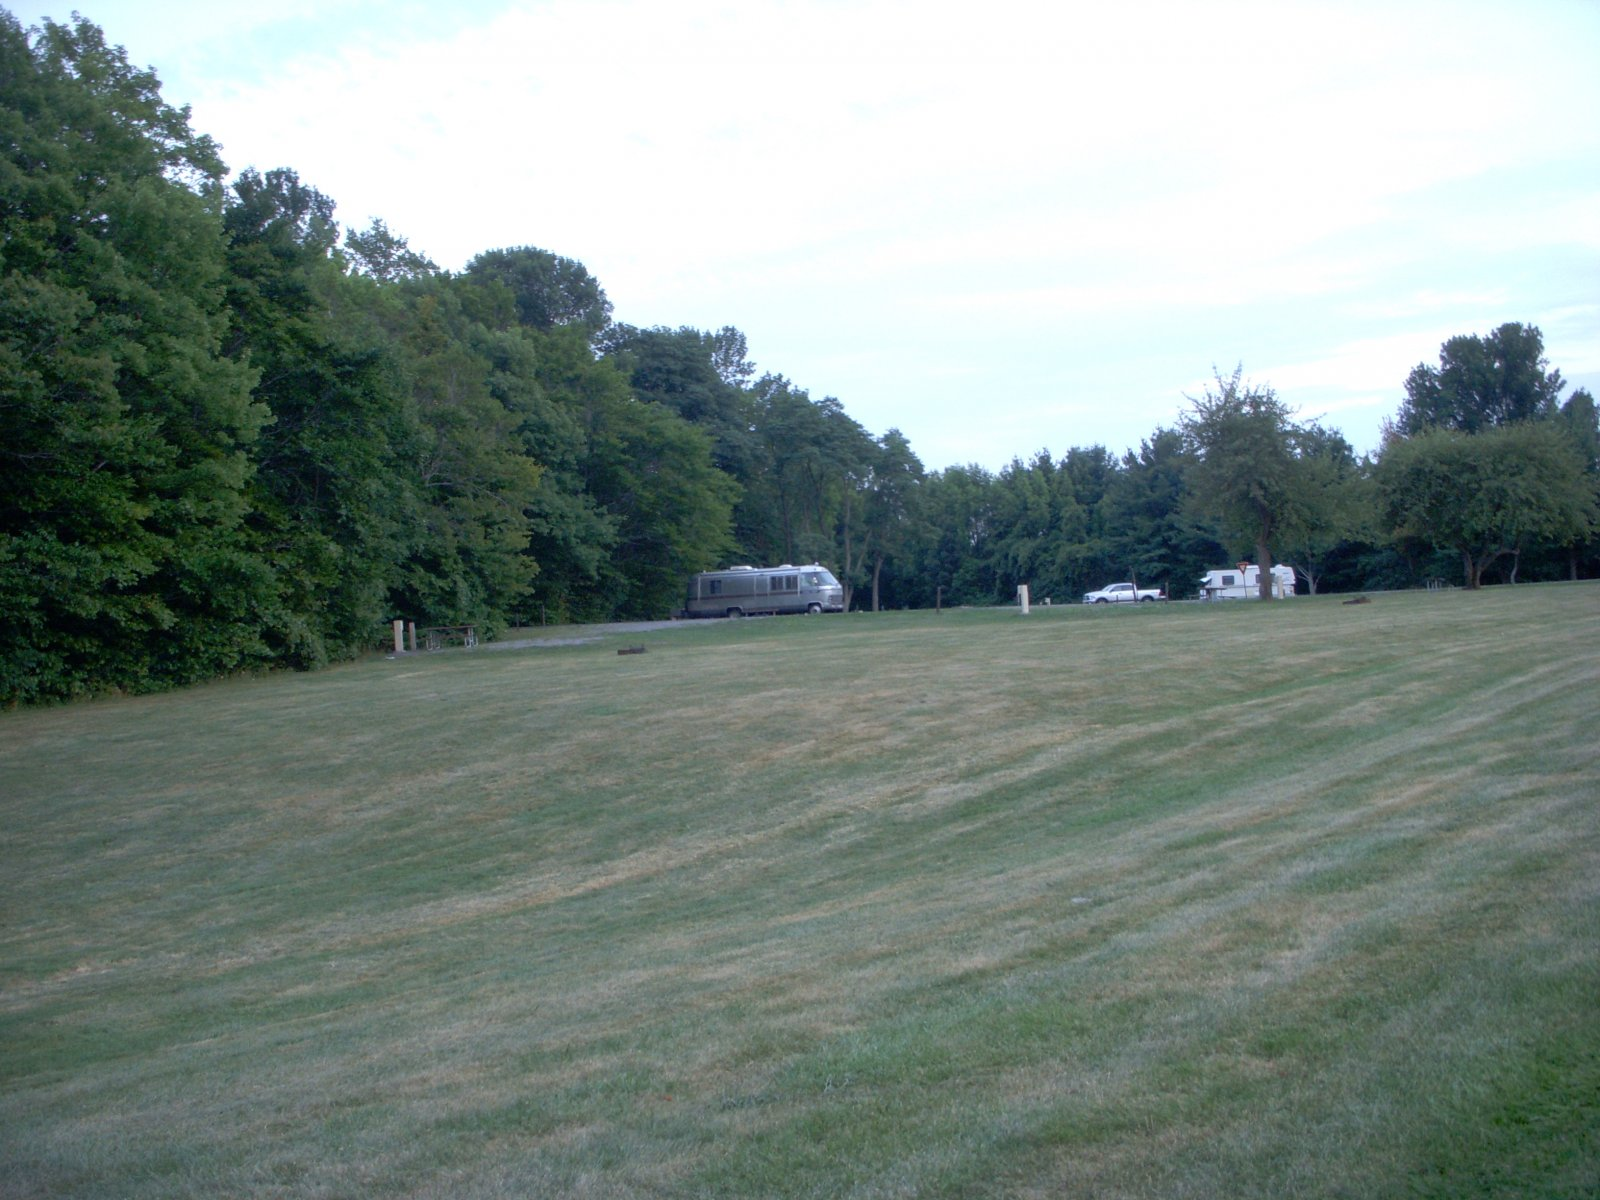 Click image for larger version  Name:Upstate New York Aug 2011 132.jpg Views:79 Size:283.0 KB ID:137546